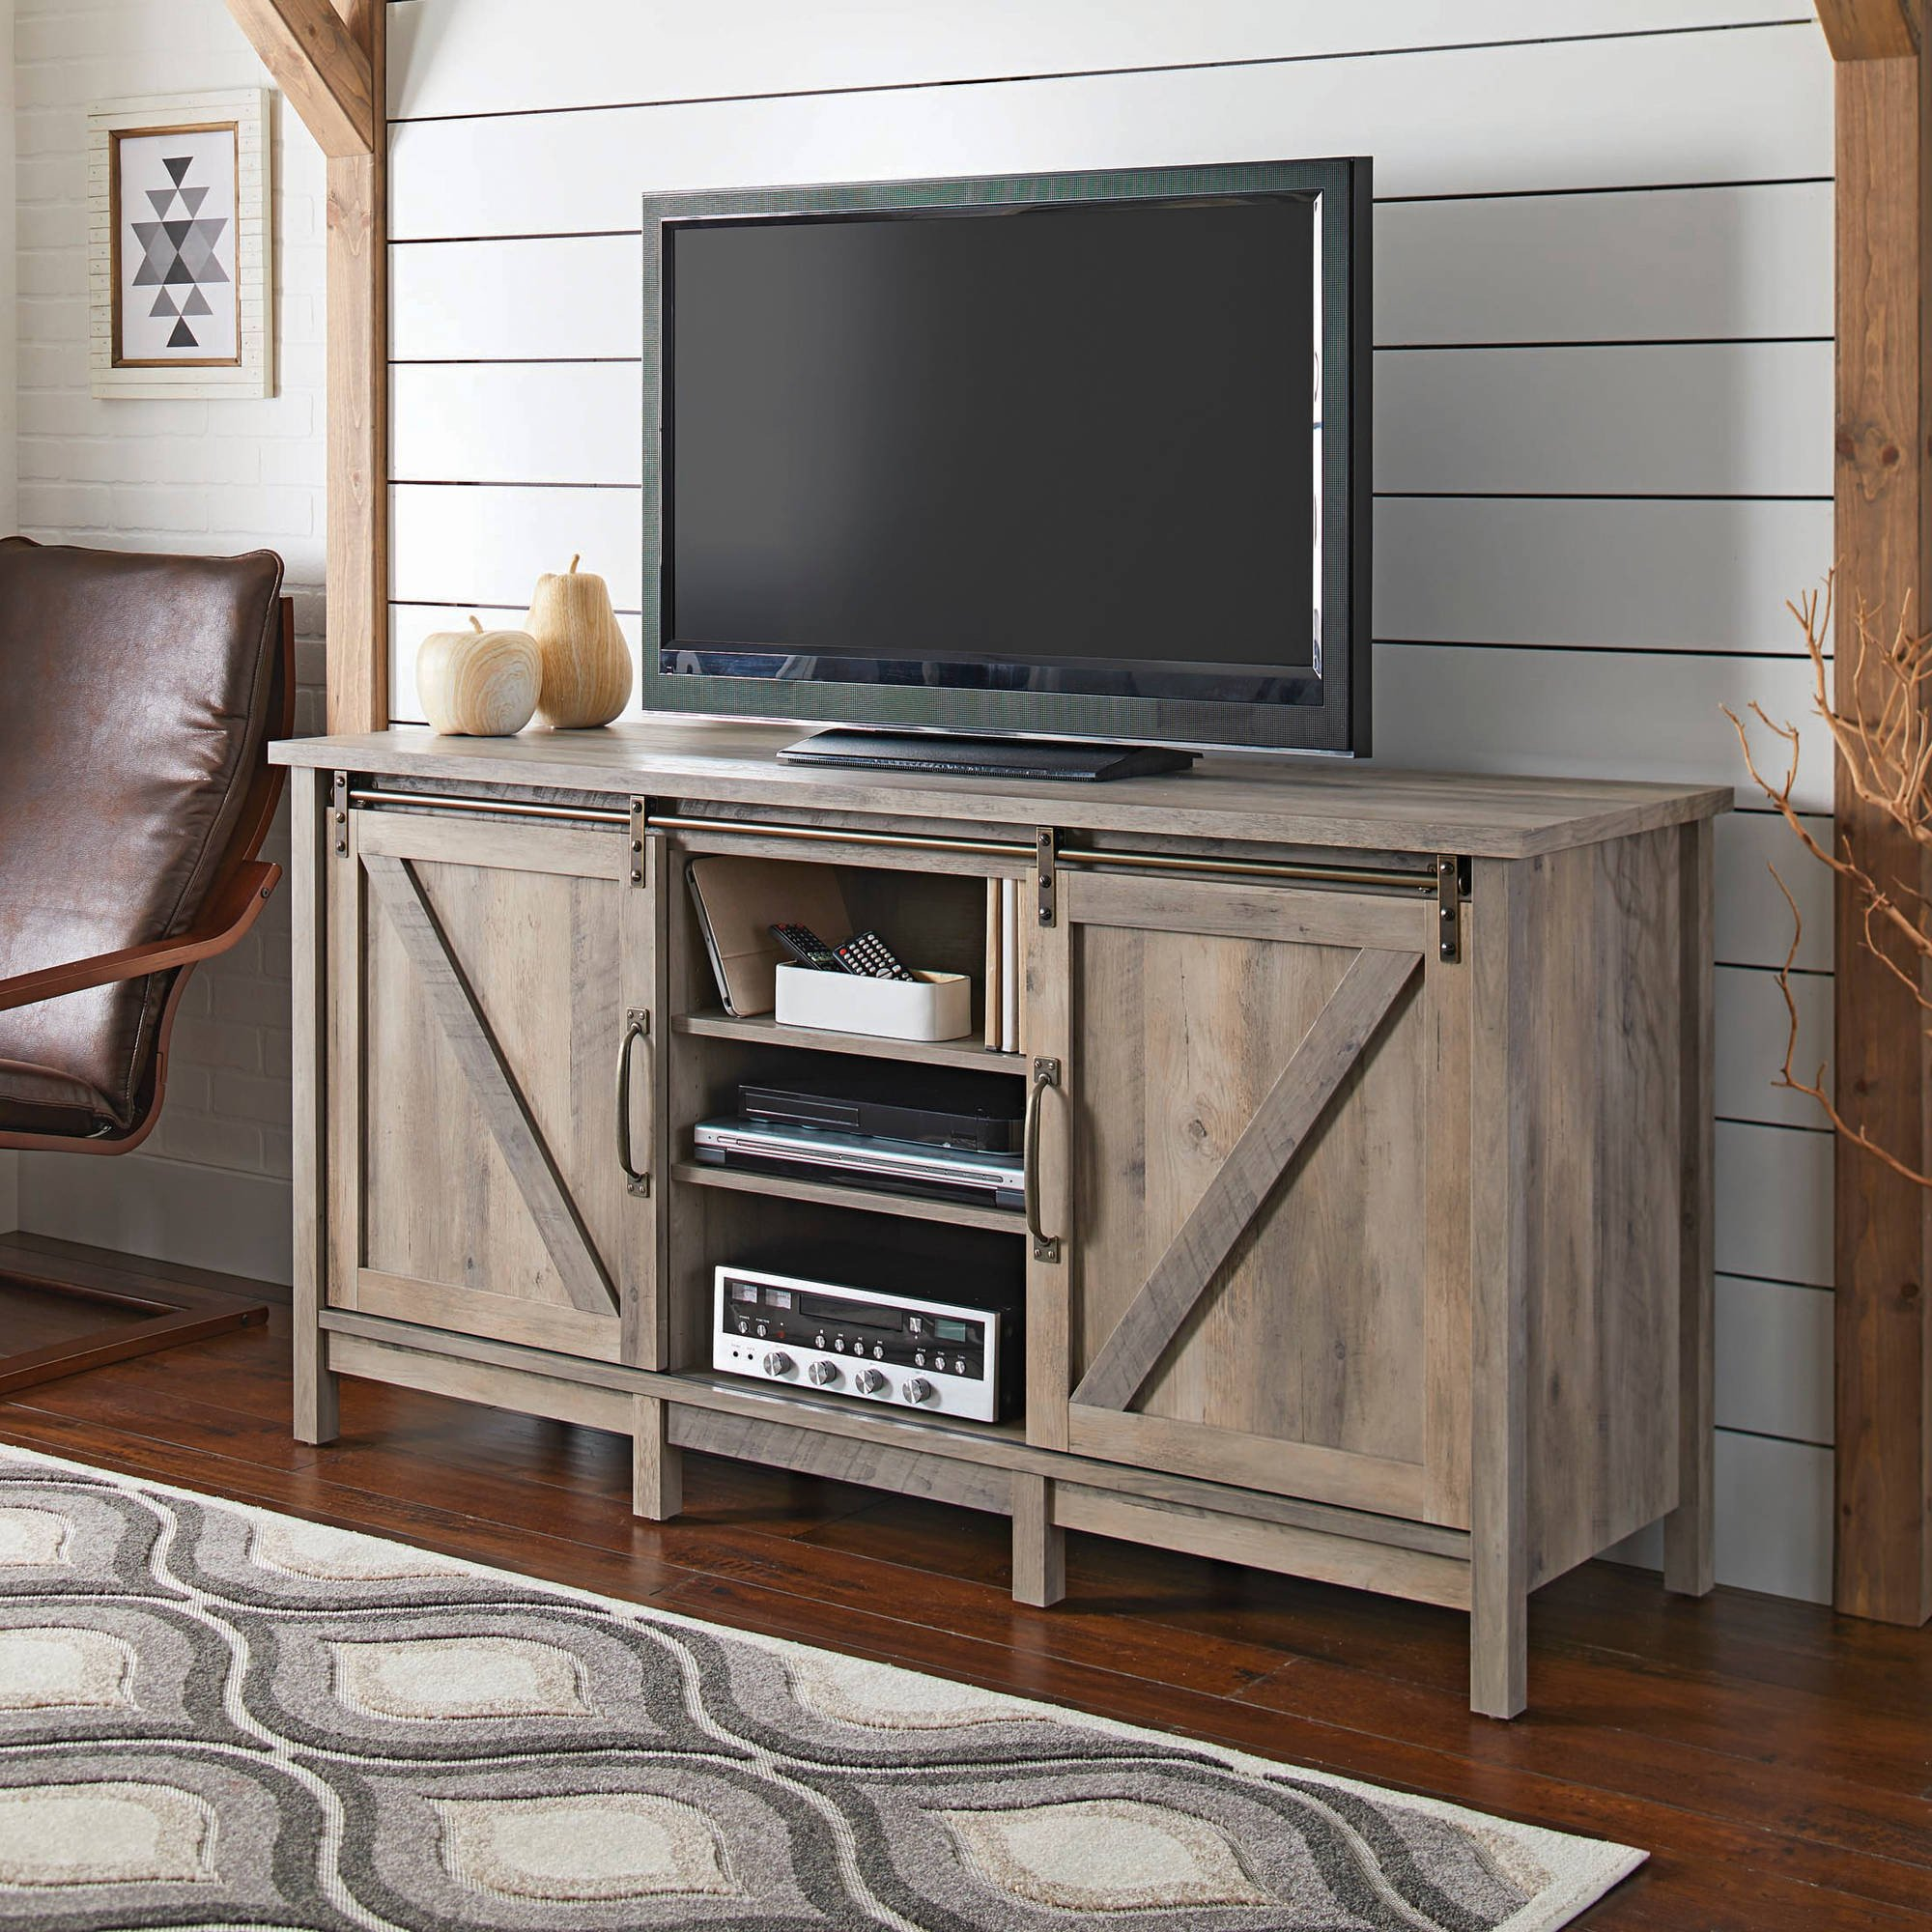 """Farmhouse Tv Stand Design Ideas and Decor Elegant Better Homes and Gardens Modern Farmhouse Tv Stand for Tvs Up to 60"""" Rustic"""